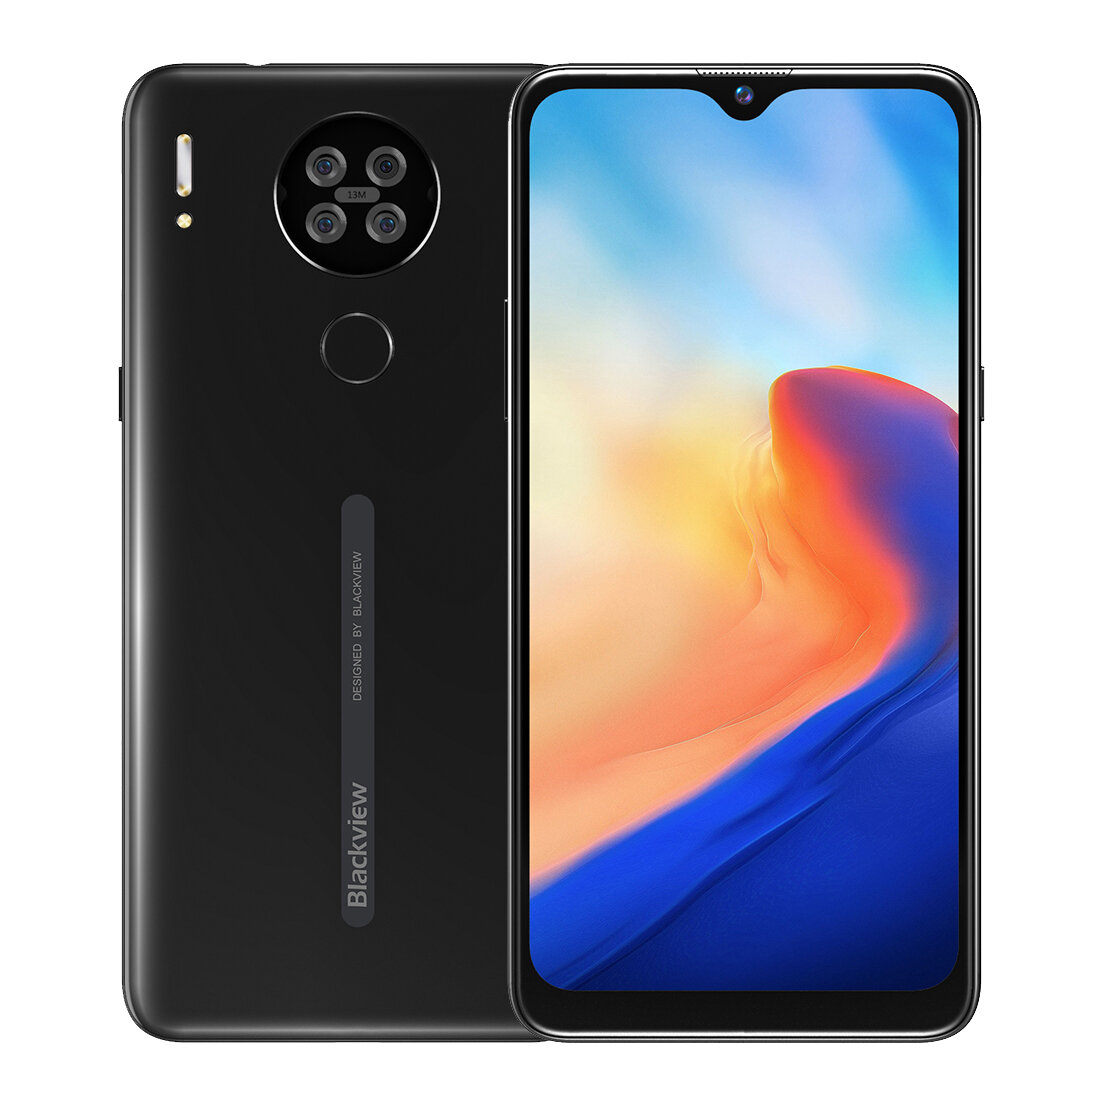 Blackview A80 6.217 inch HD+ Waterdrop Display 3800mAh Android 10 Go 13MP Quad Rear Camera 2GB 16GB MT6737V/W Quad Core 4G Smartphone - Black